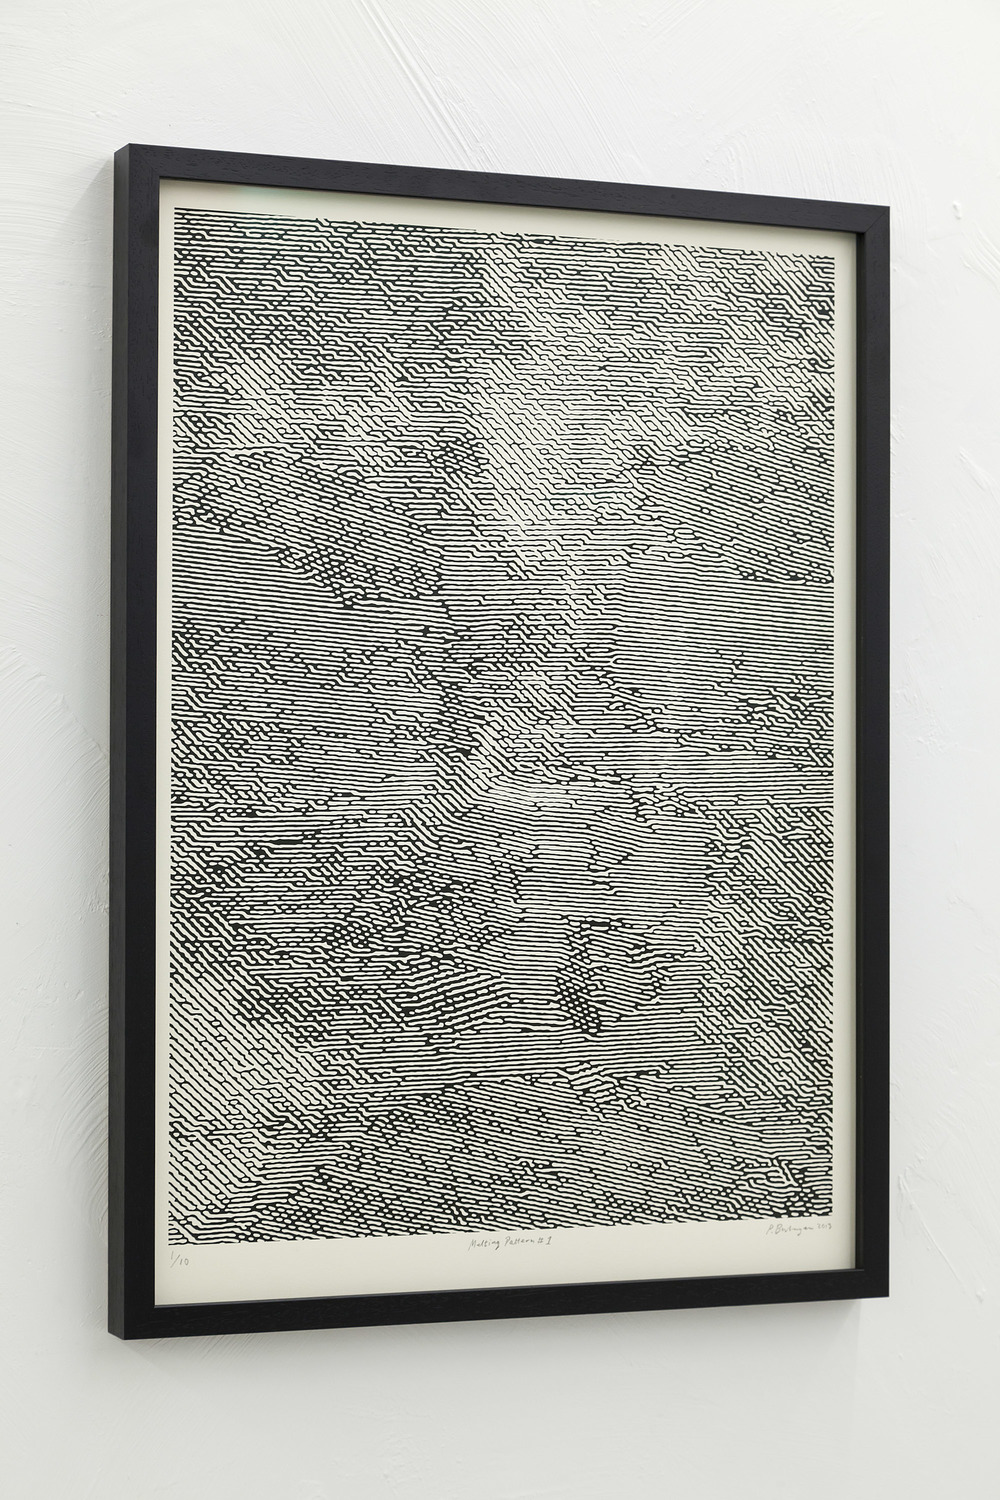 Melting Pattern #1, 2013